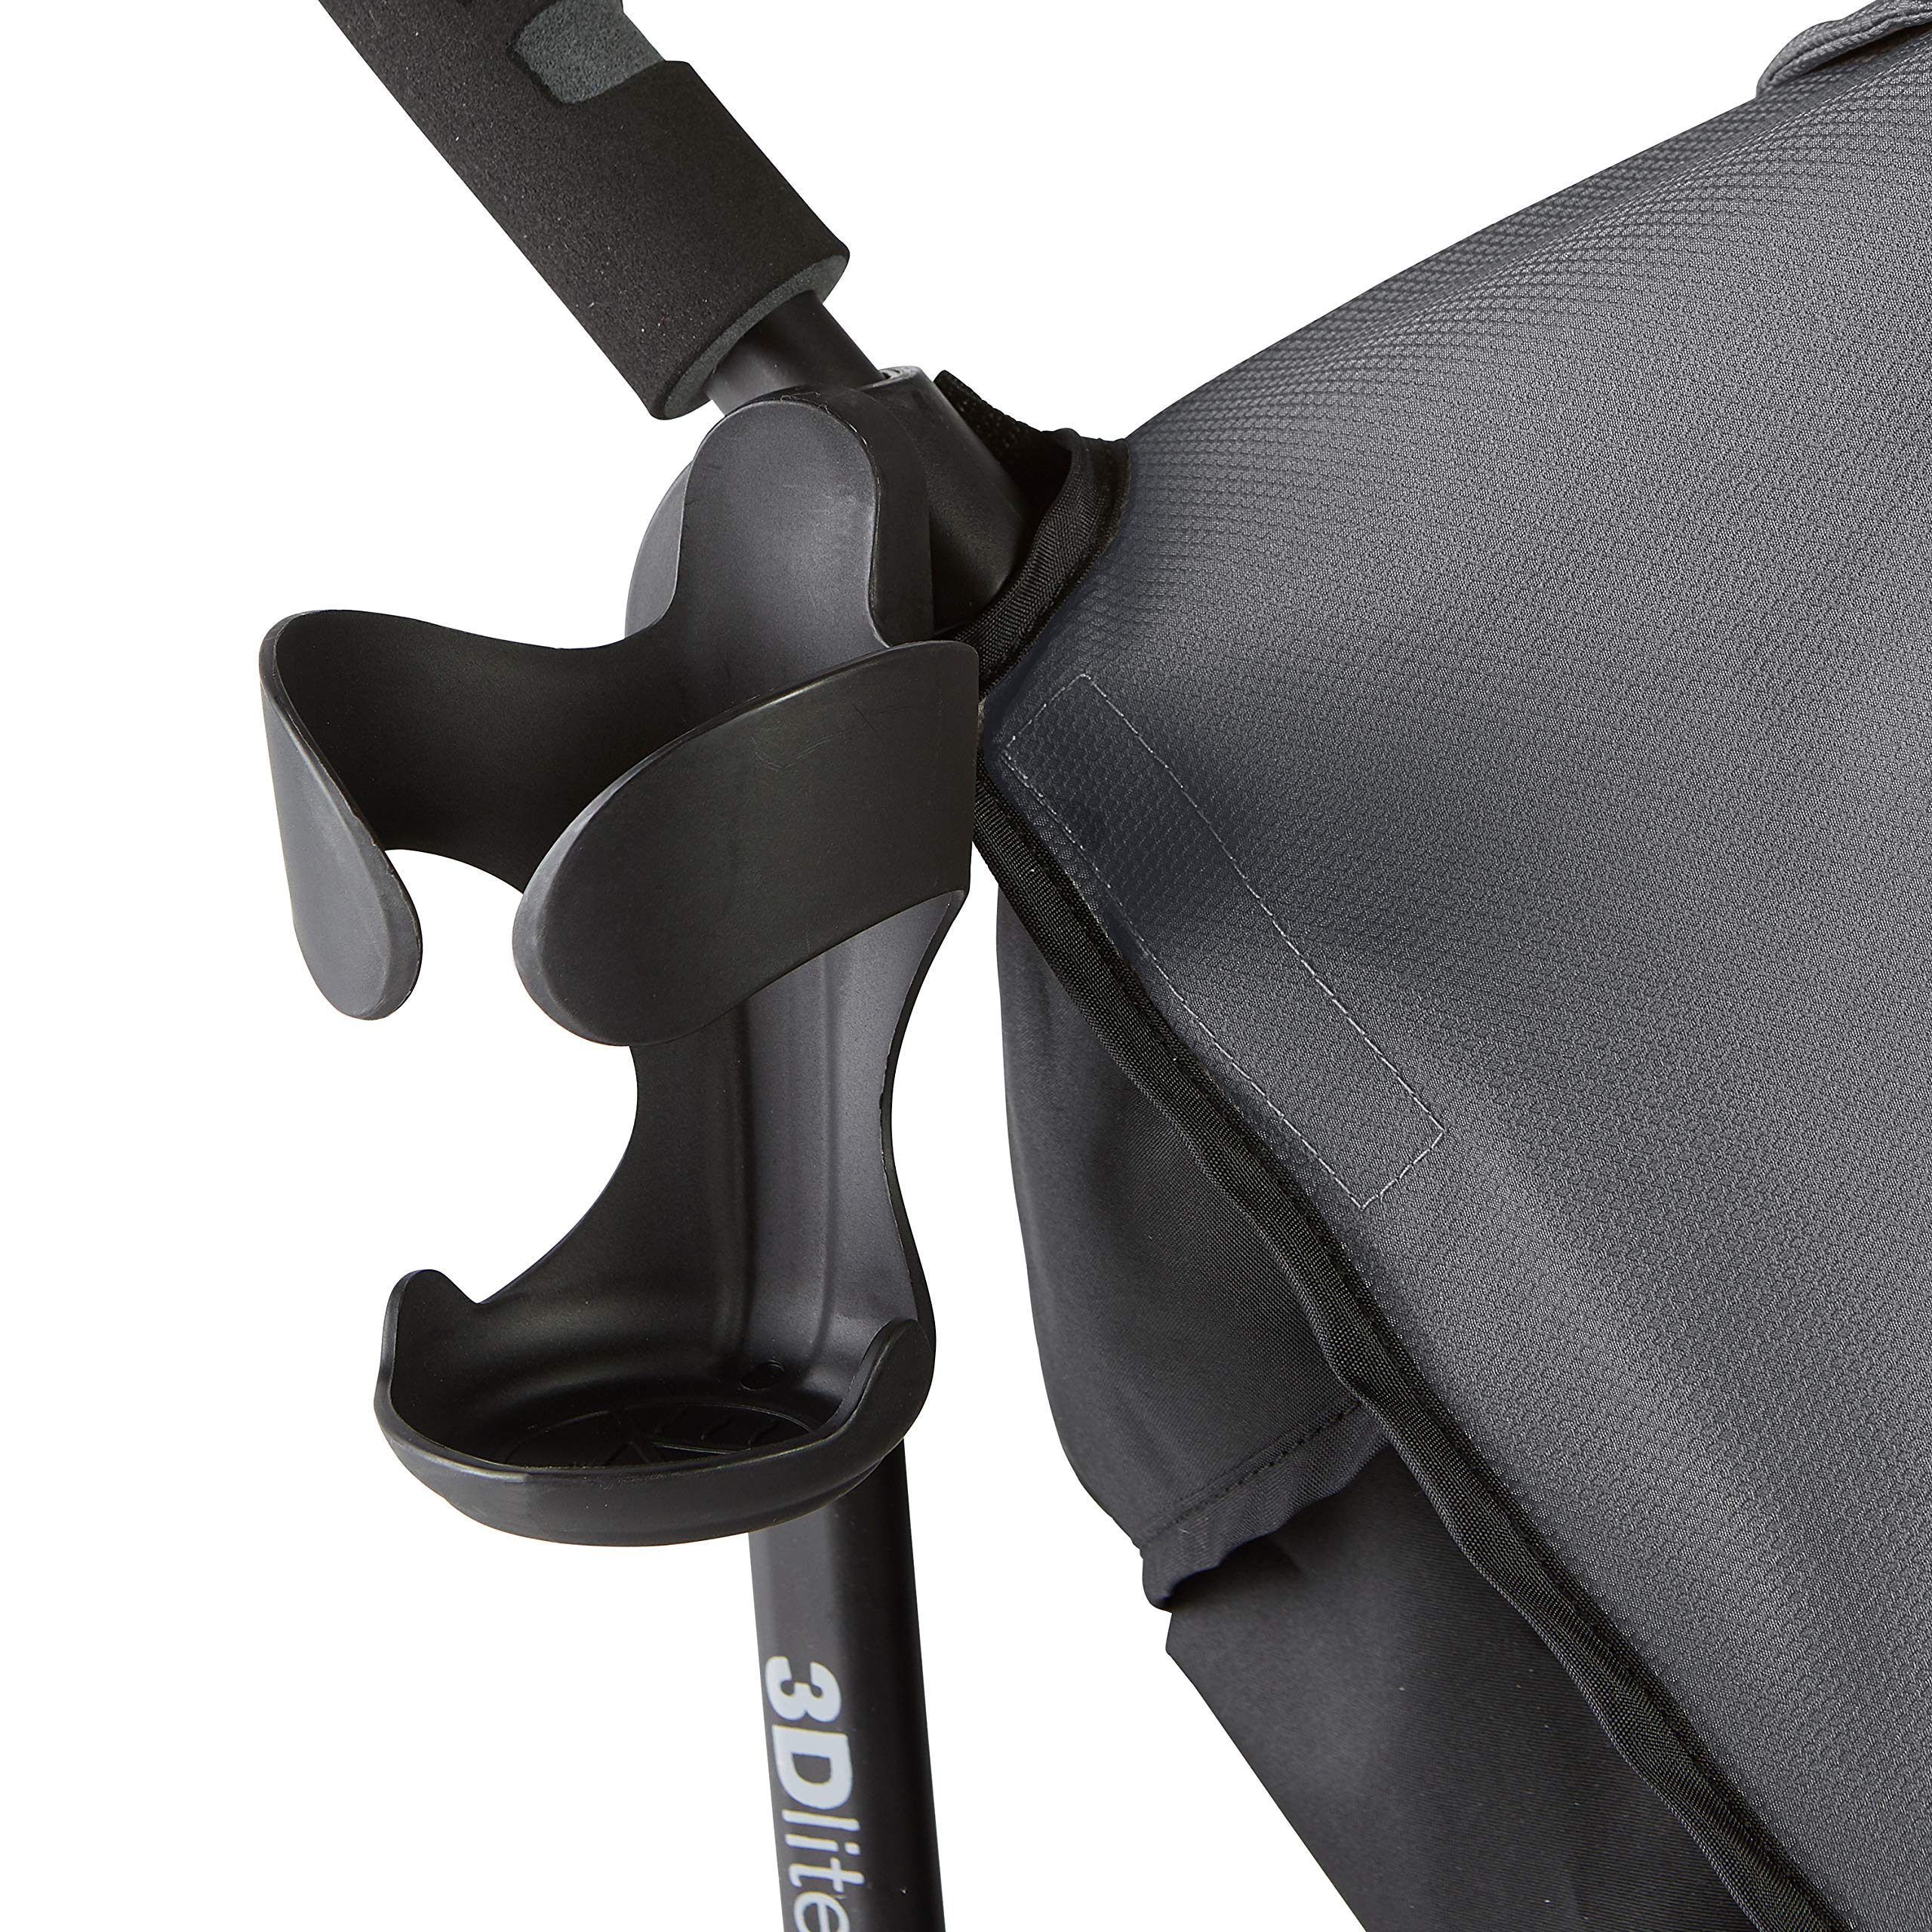 Summer 3Dlite+ Convenience Stroller, Matte Gray - Lightweight Umbrella Stroller with Oversized Canopy, Extra-Large Storage and Compact Fold by Summer Infant (Image #4)